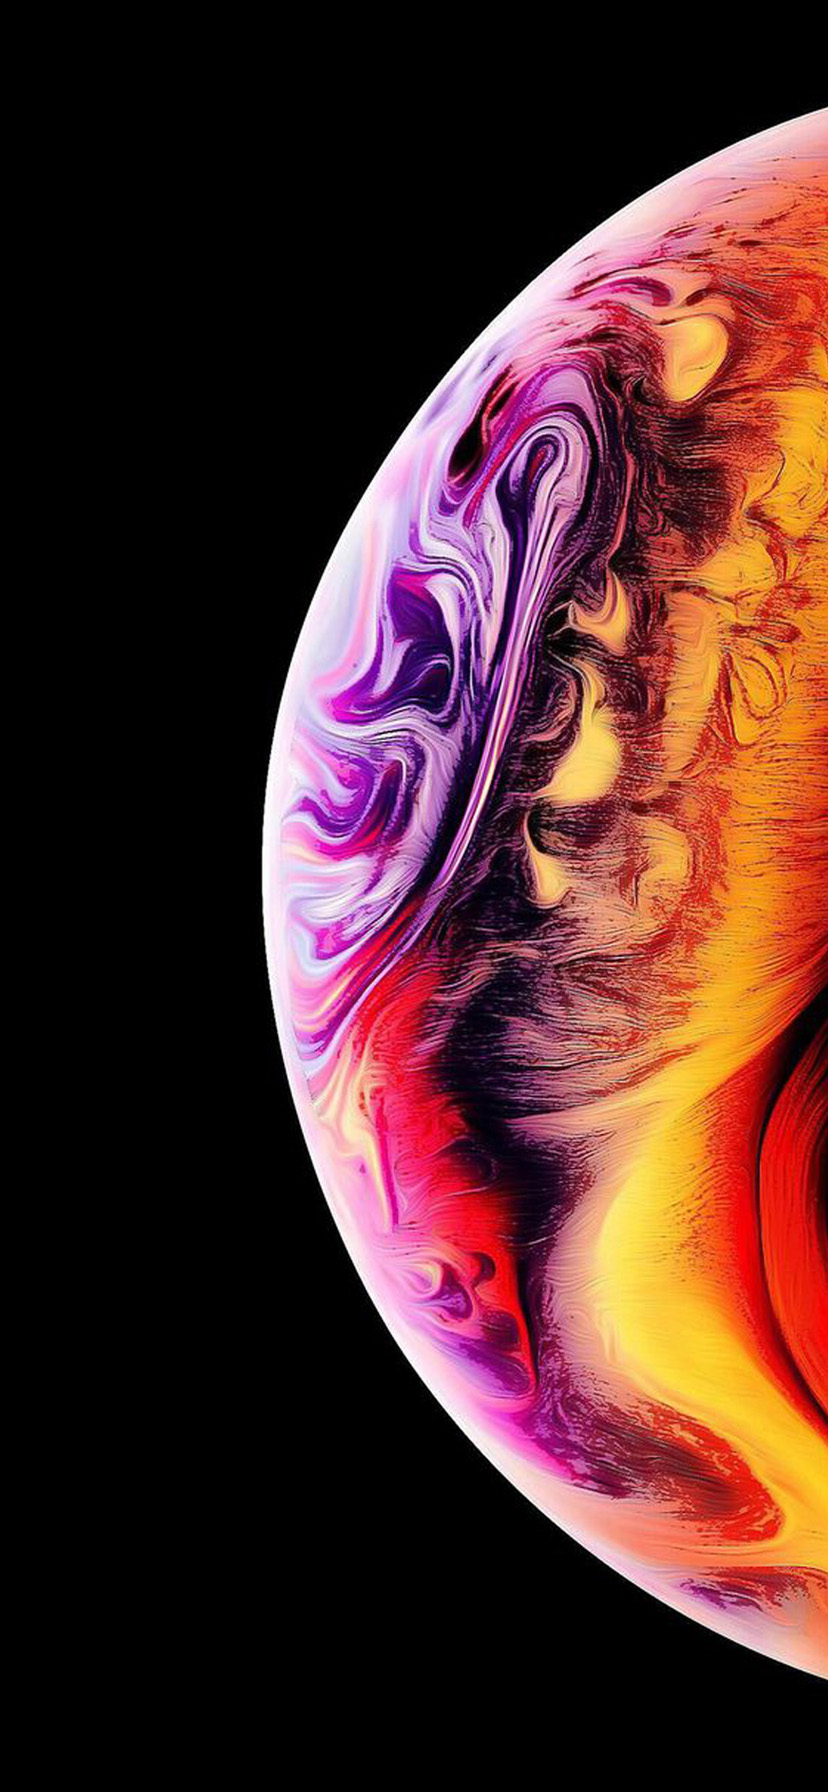 Retro Apple Wallpaper Iphone X 44 Iphone Xr Wallpapers Download Free Iphoneheat